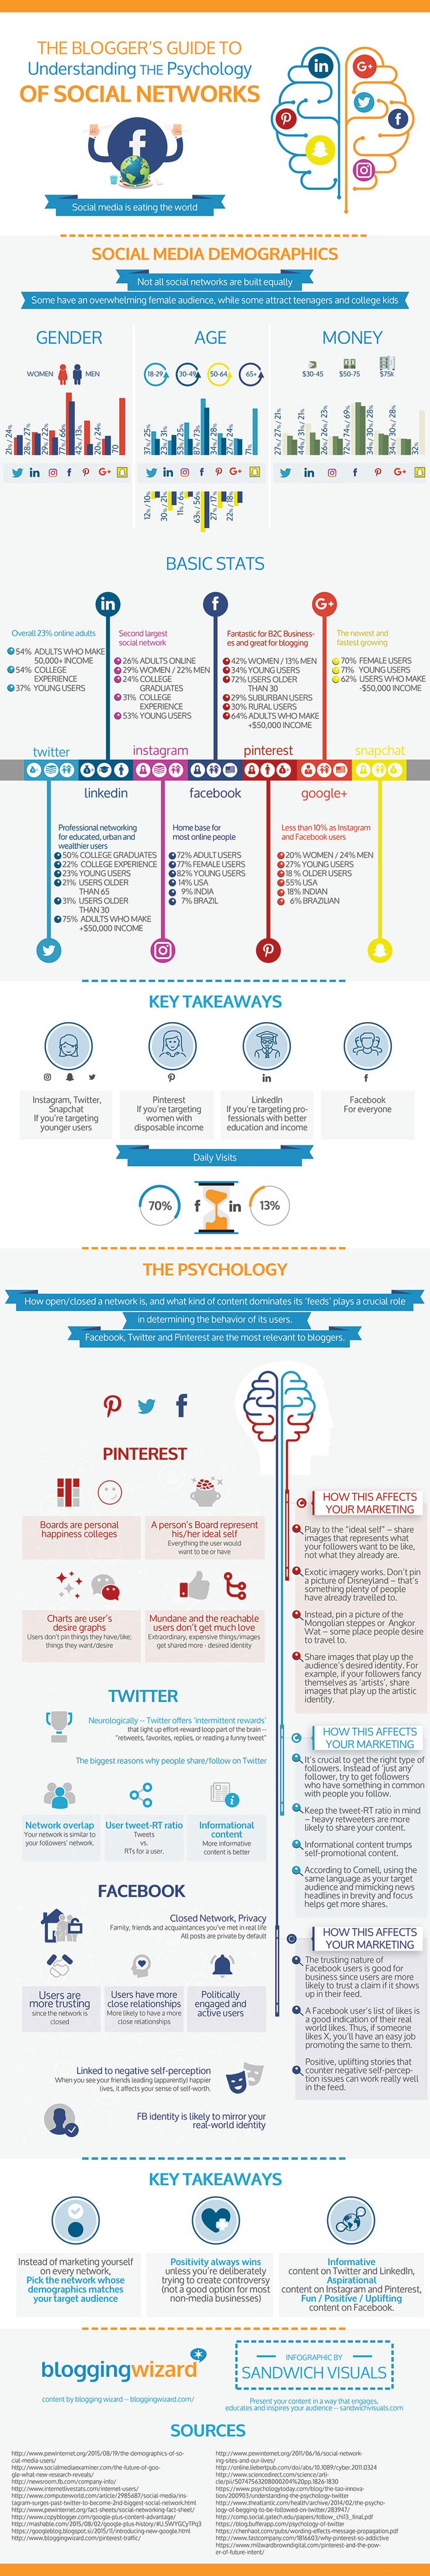 How The Psychology Of Social Networks Can Improve Your Marketing [INFOGRAPHIC] via Adam Connell